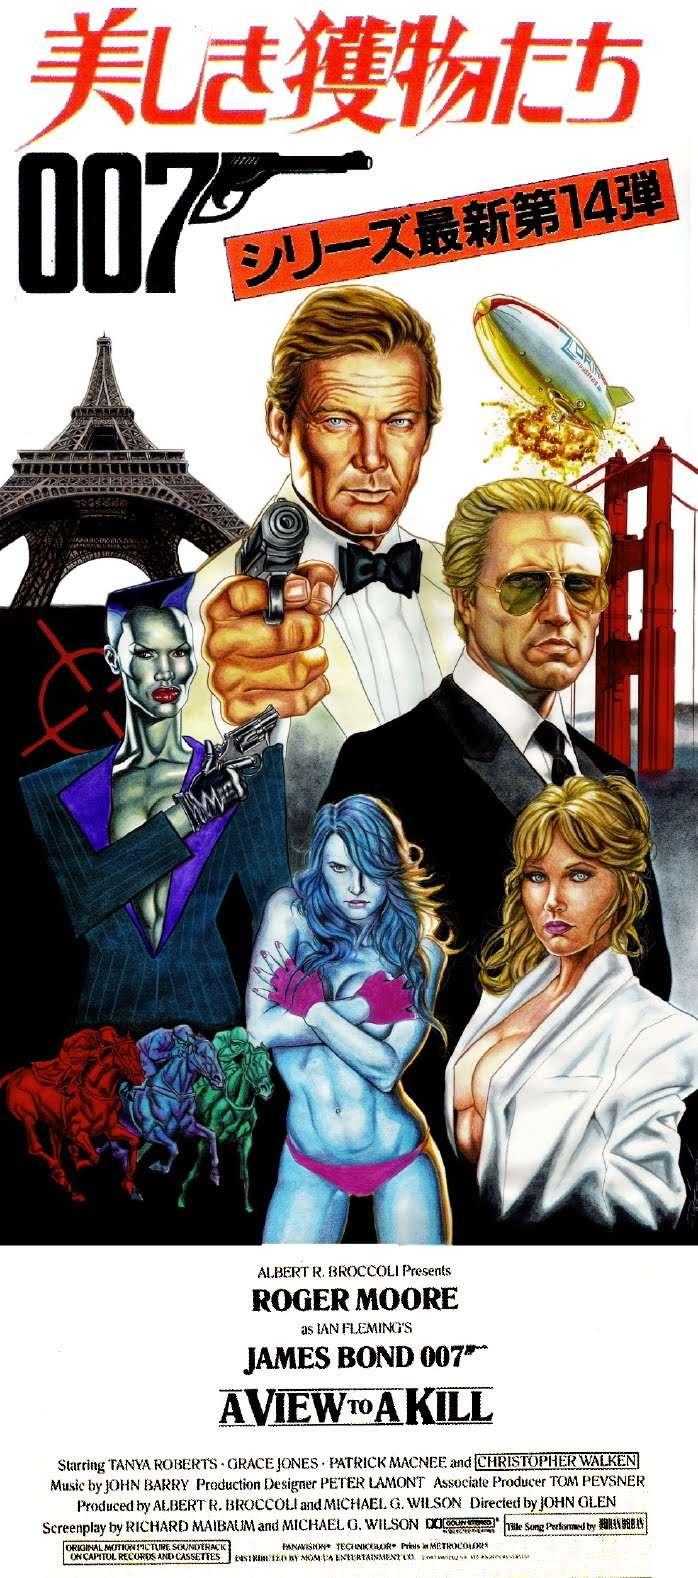 A View From The Beach 17 Will Get You 20: The Geeky Nerfherder: Movie Poster Art: James Bond